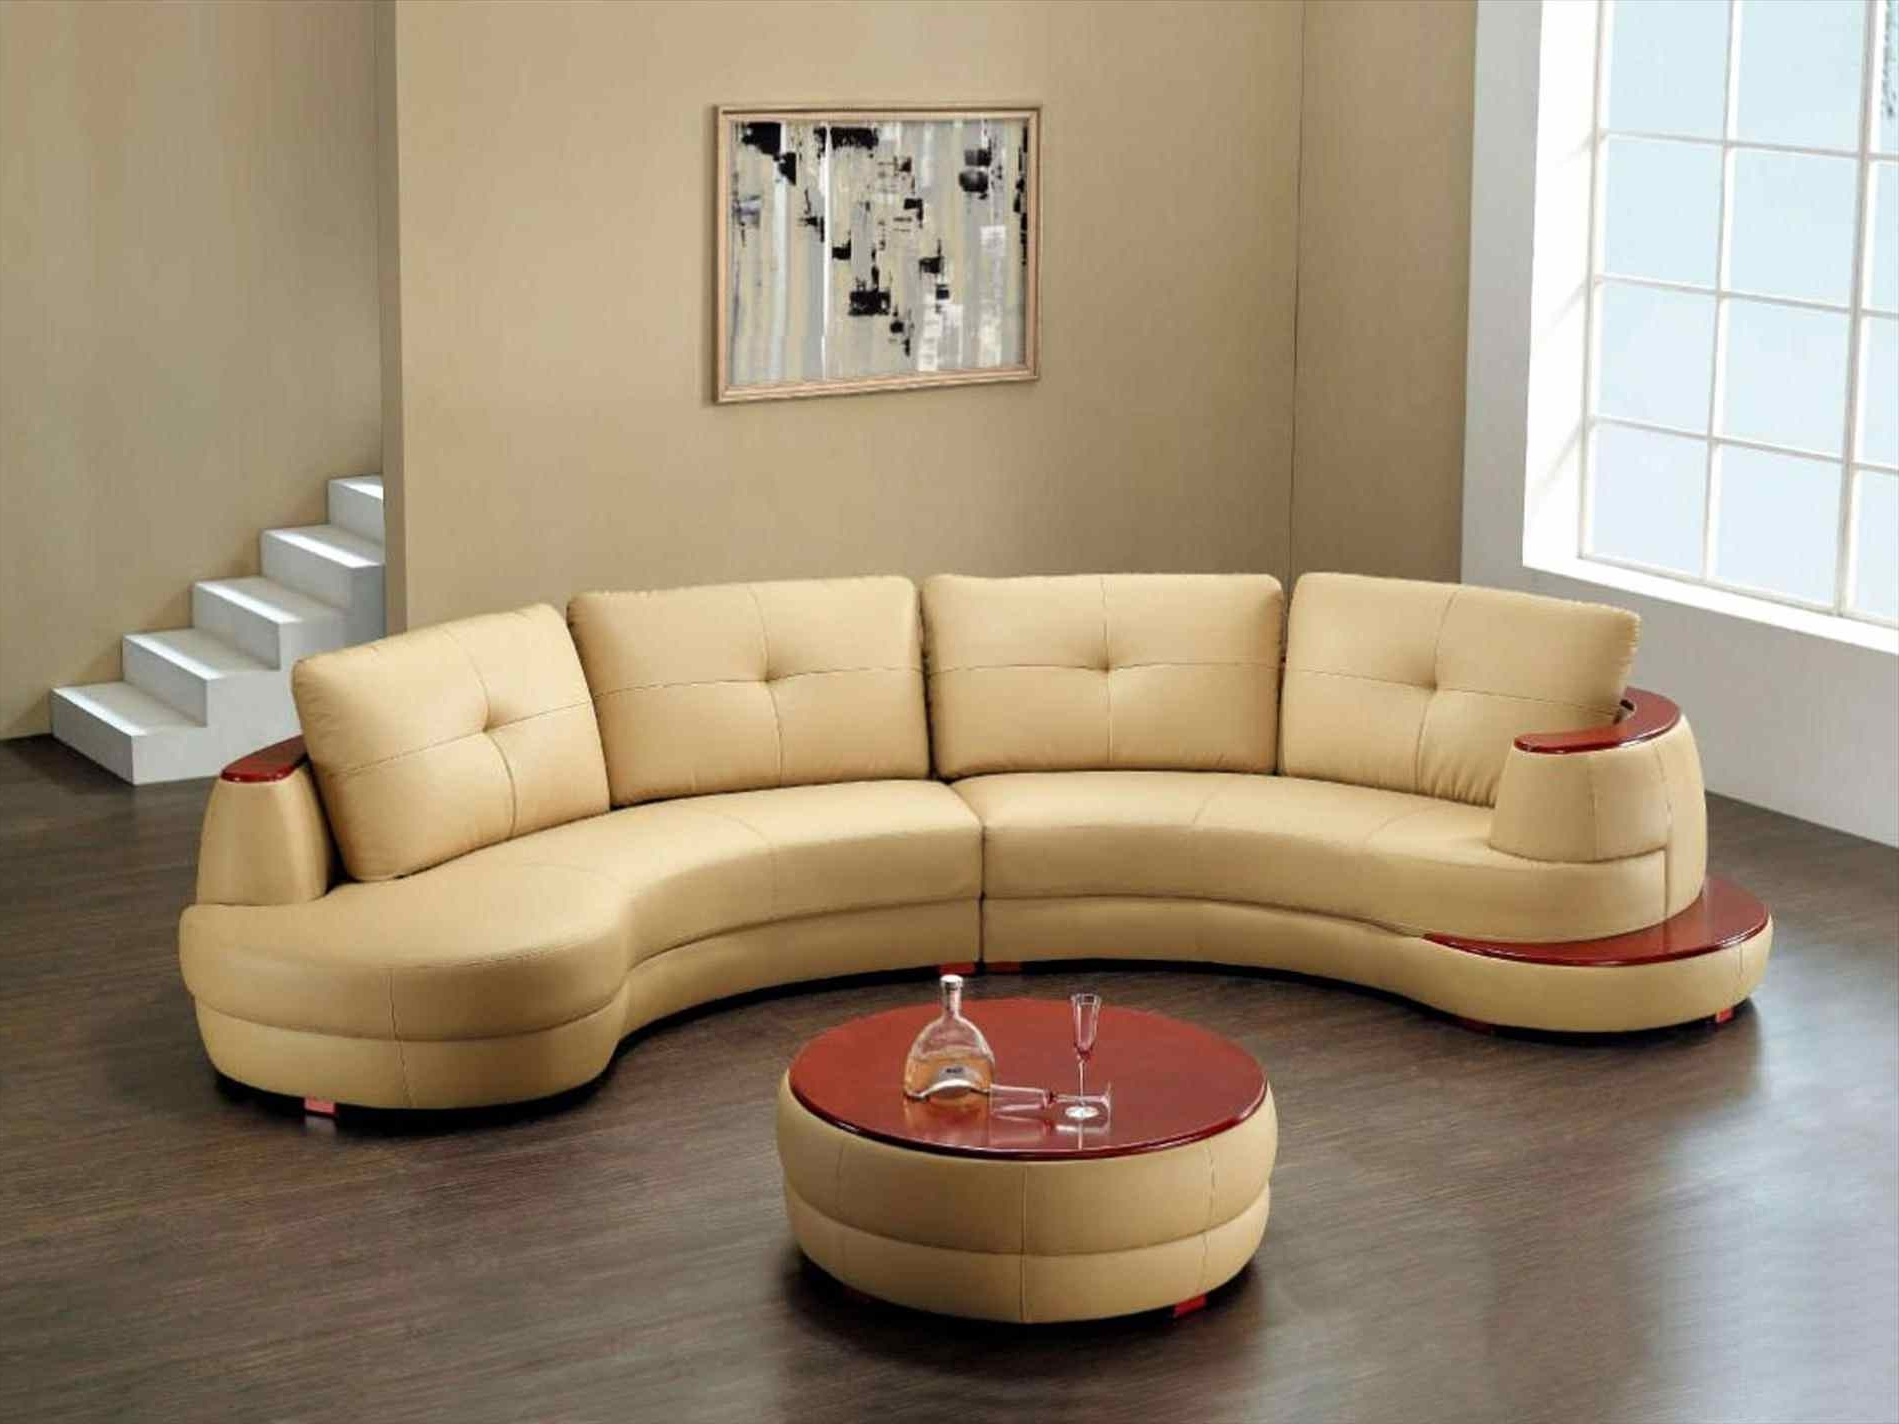 Customized Sofas Inside Widely Used Couch : Uae Call Settees Sofa Small Circle Couch Customized Sofas (View 6 of 20)